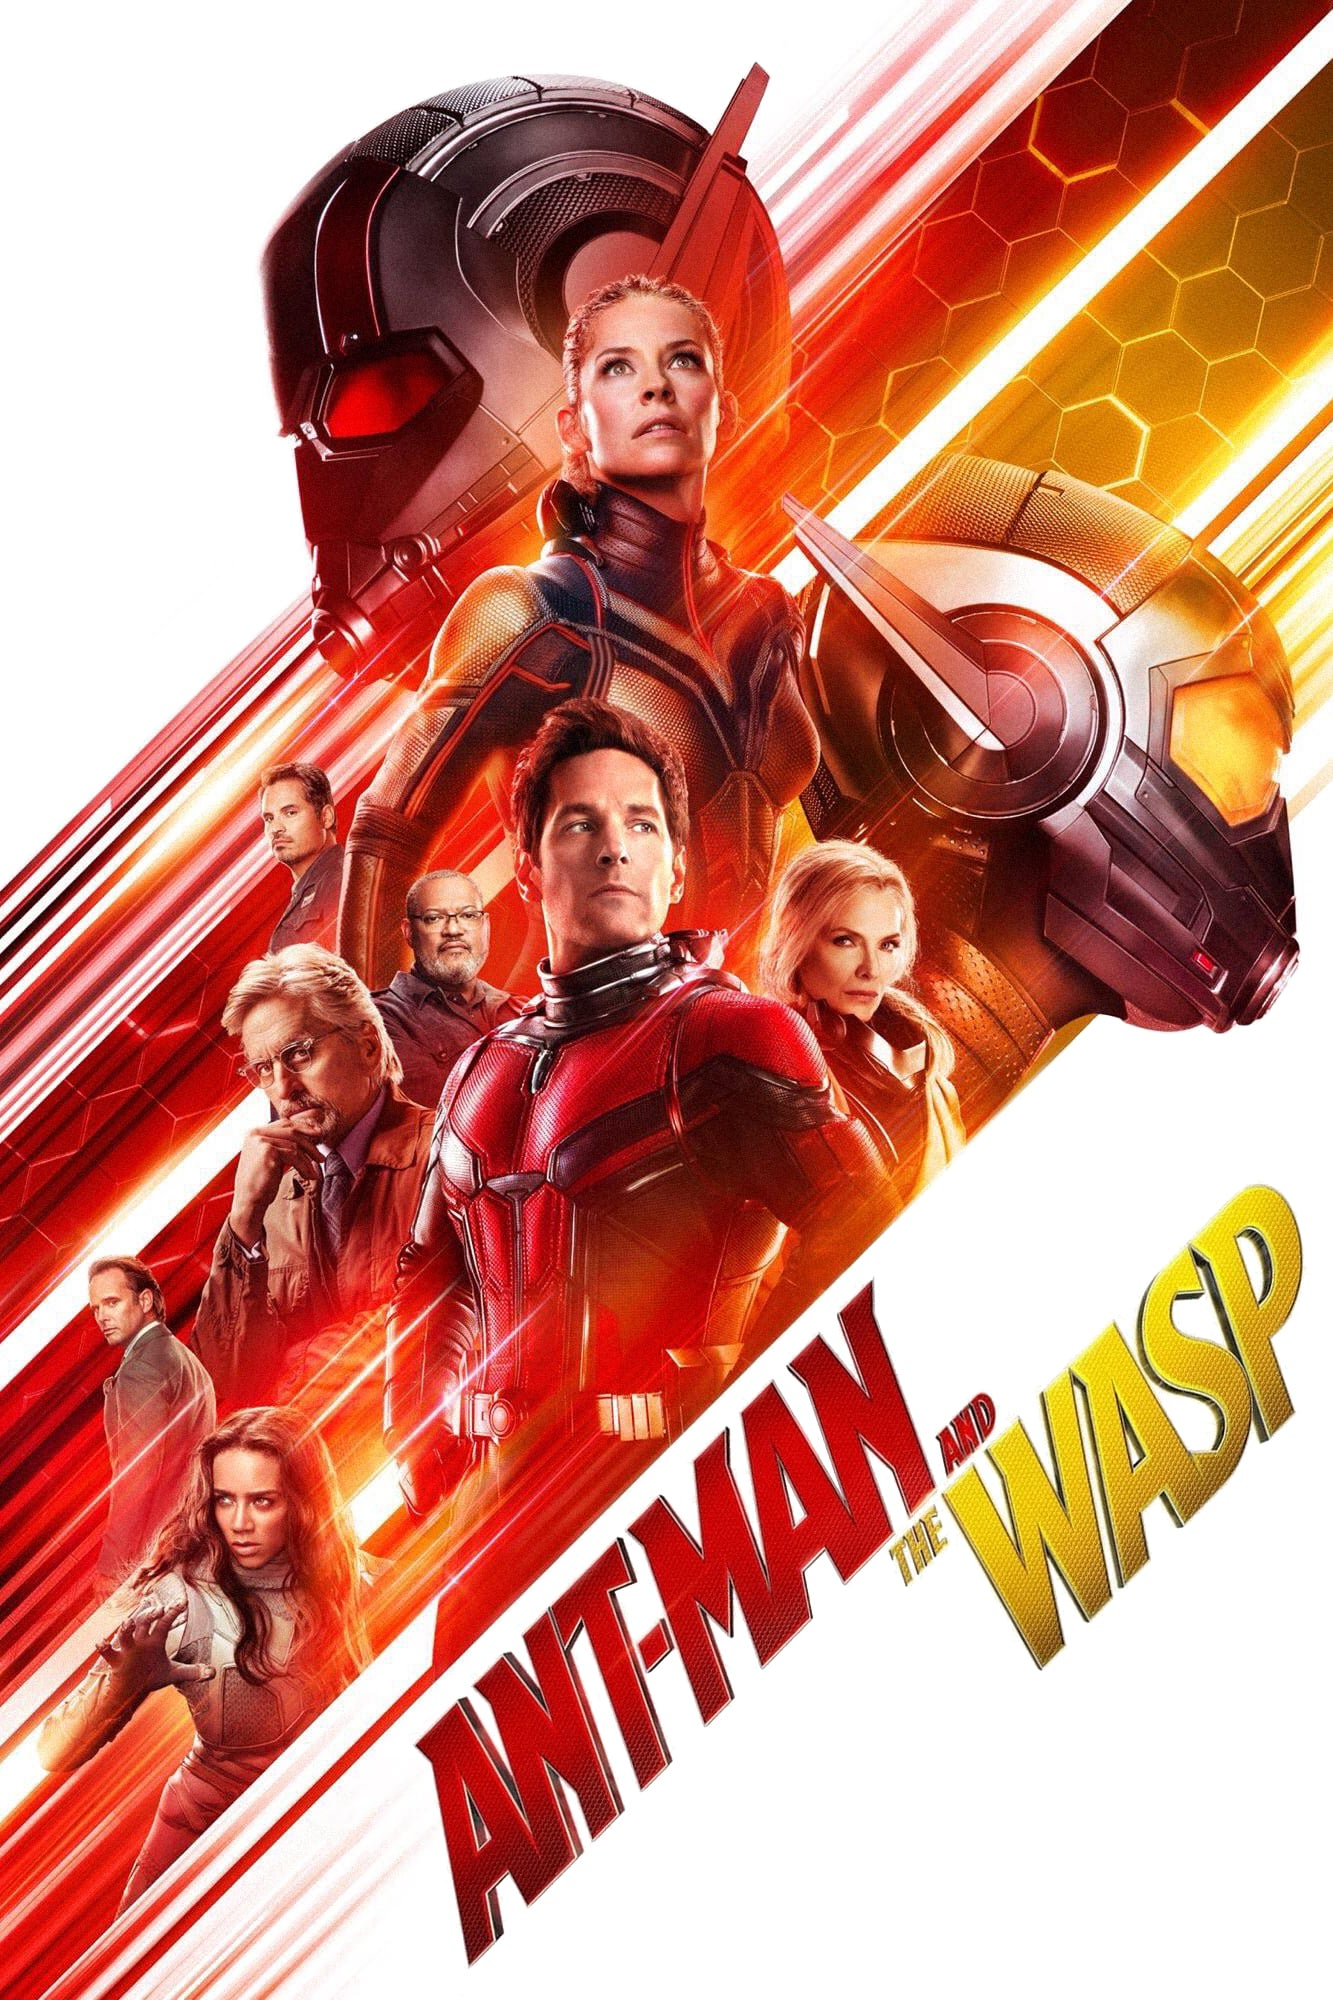 10. Ant-man and the Wasp -